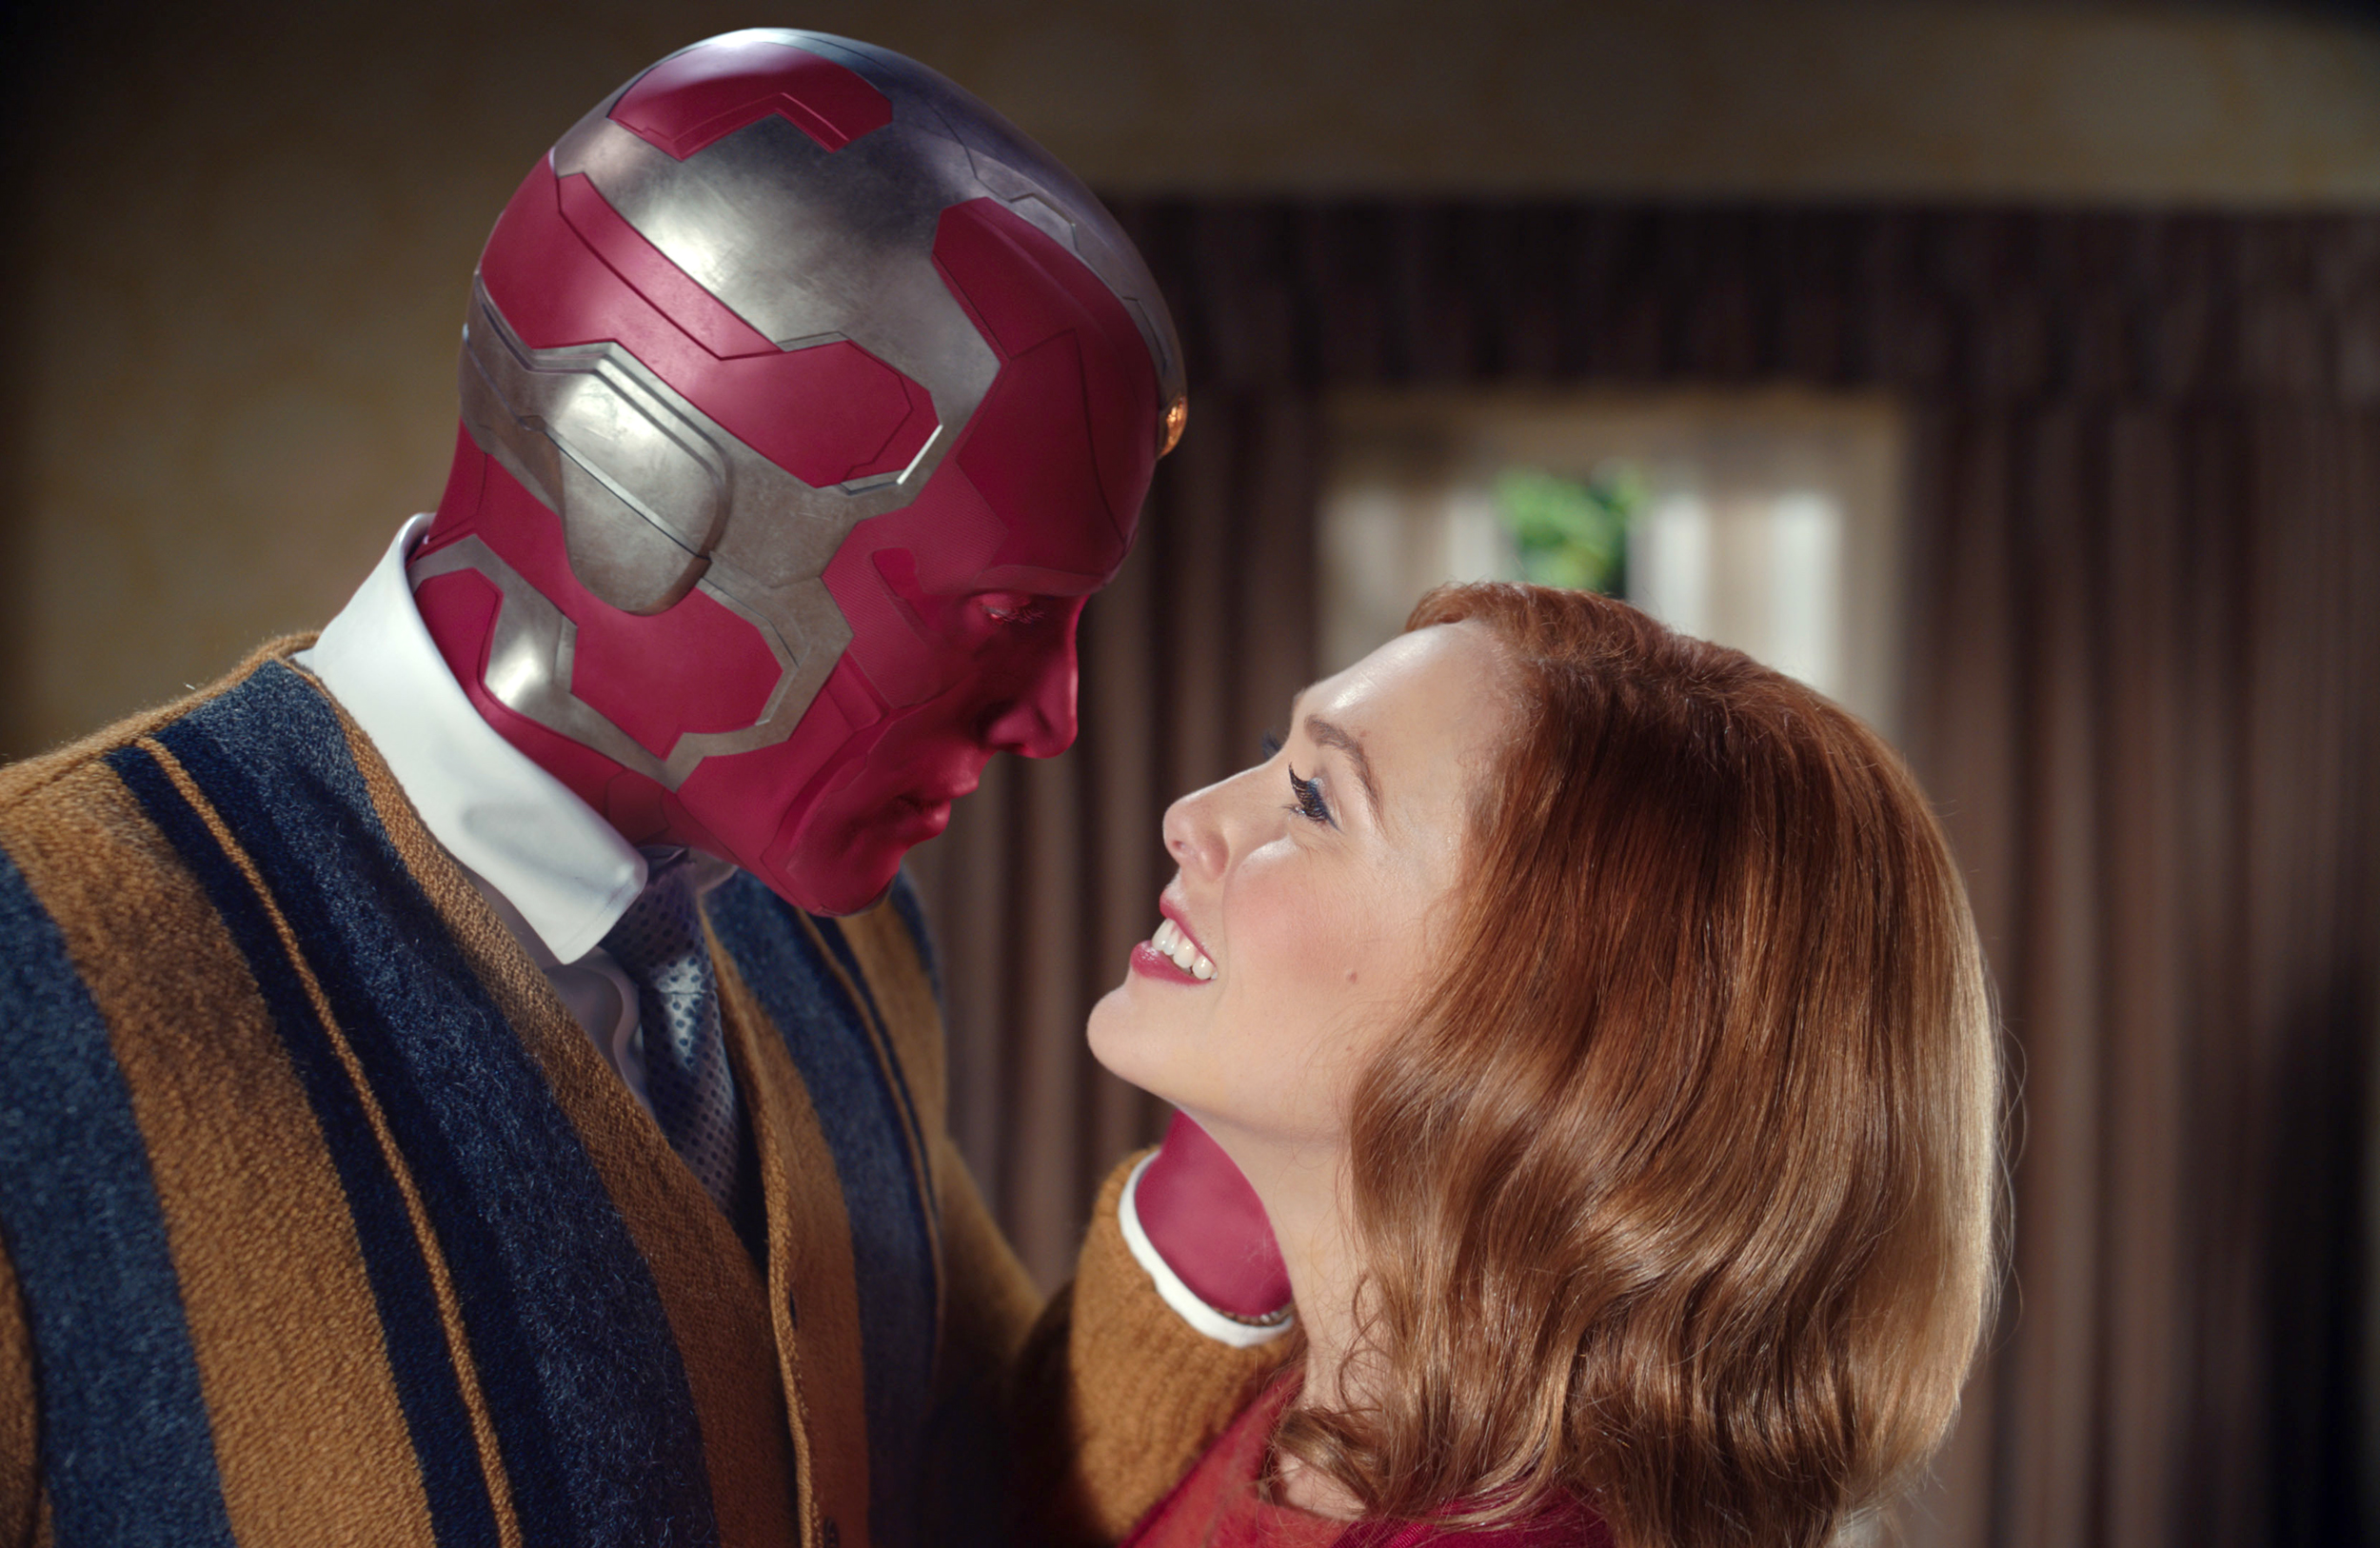 WandaVision' on Disney+ is Marvel's first (and very weird) attempt at prestige TV